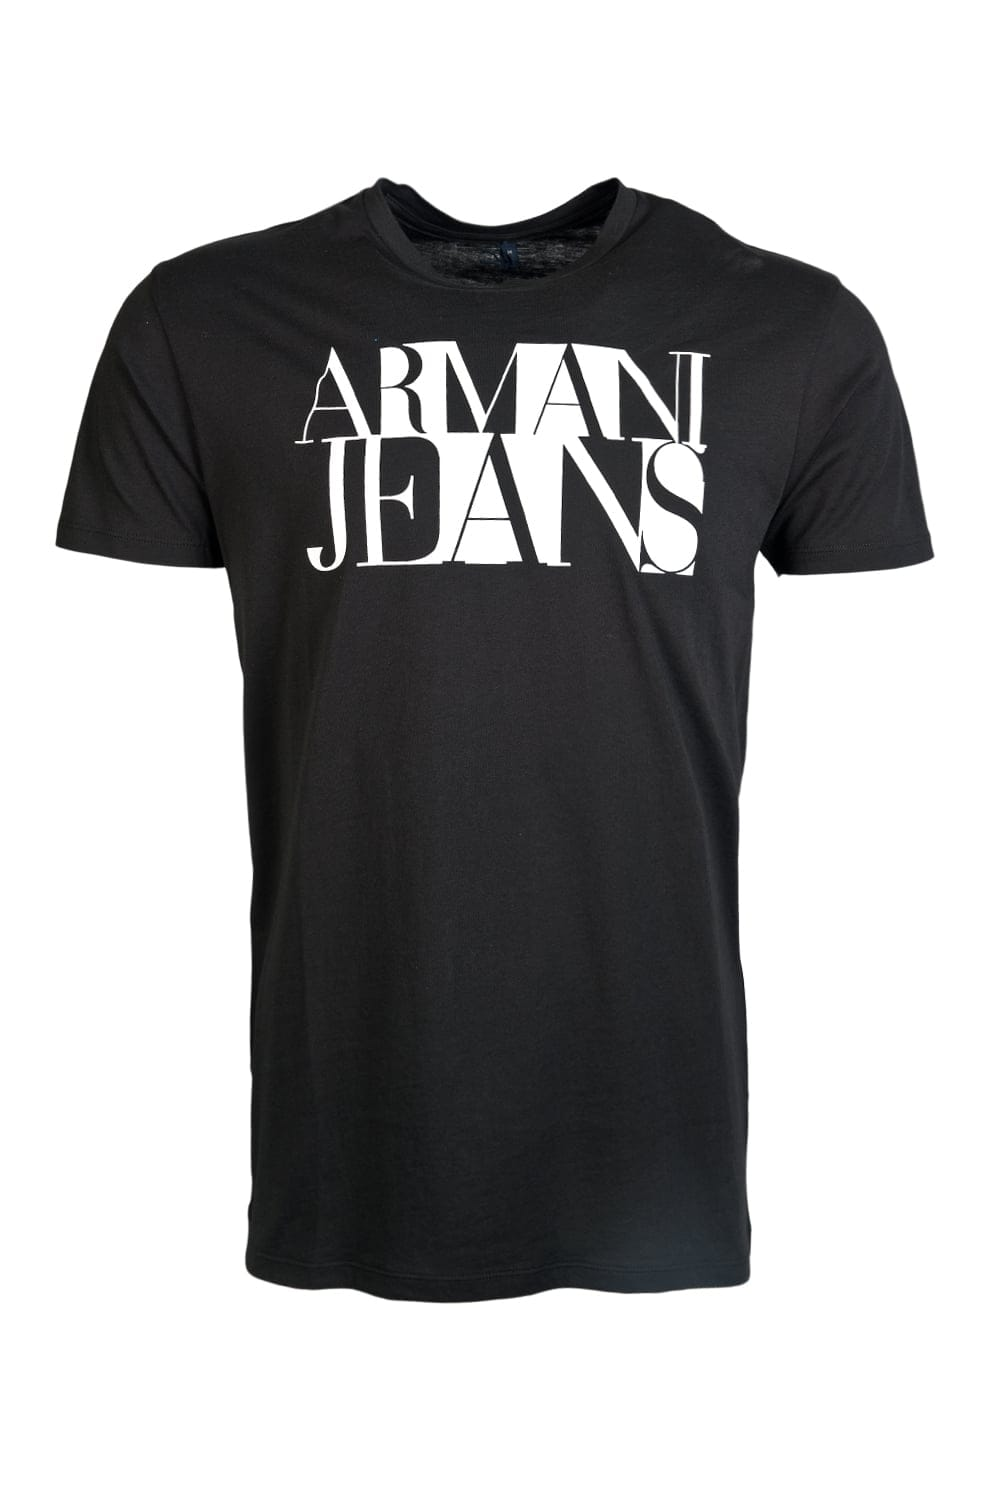 armani jeans t shirt c6h72ff clothing from sage clothing uk. Black Bedroom Furniture Sets. Home Design Ideas